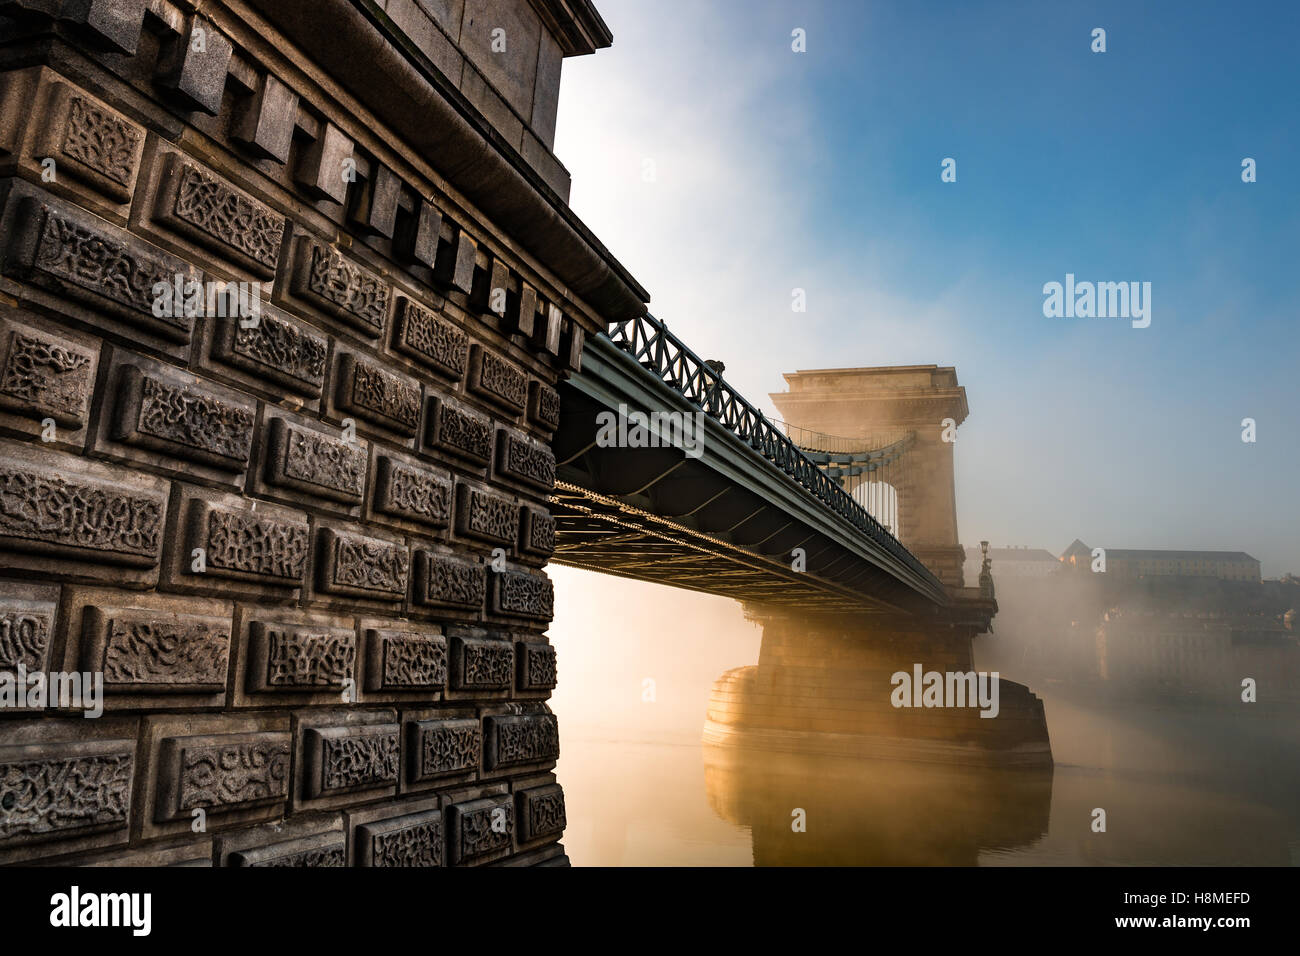 Chain bridge in Hyngarian capital - budapest durind the foggy morning after sunrise - Stock Image